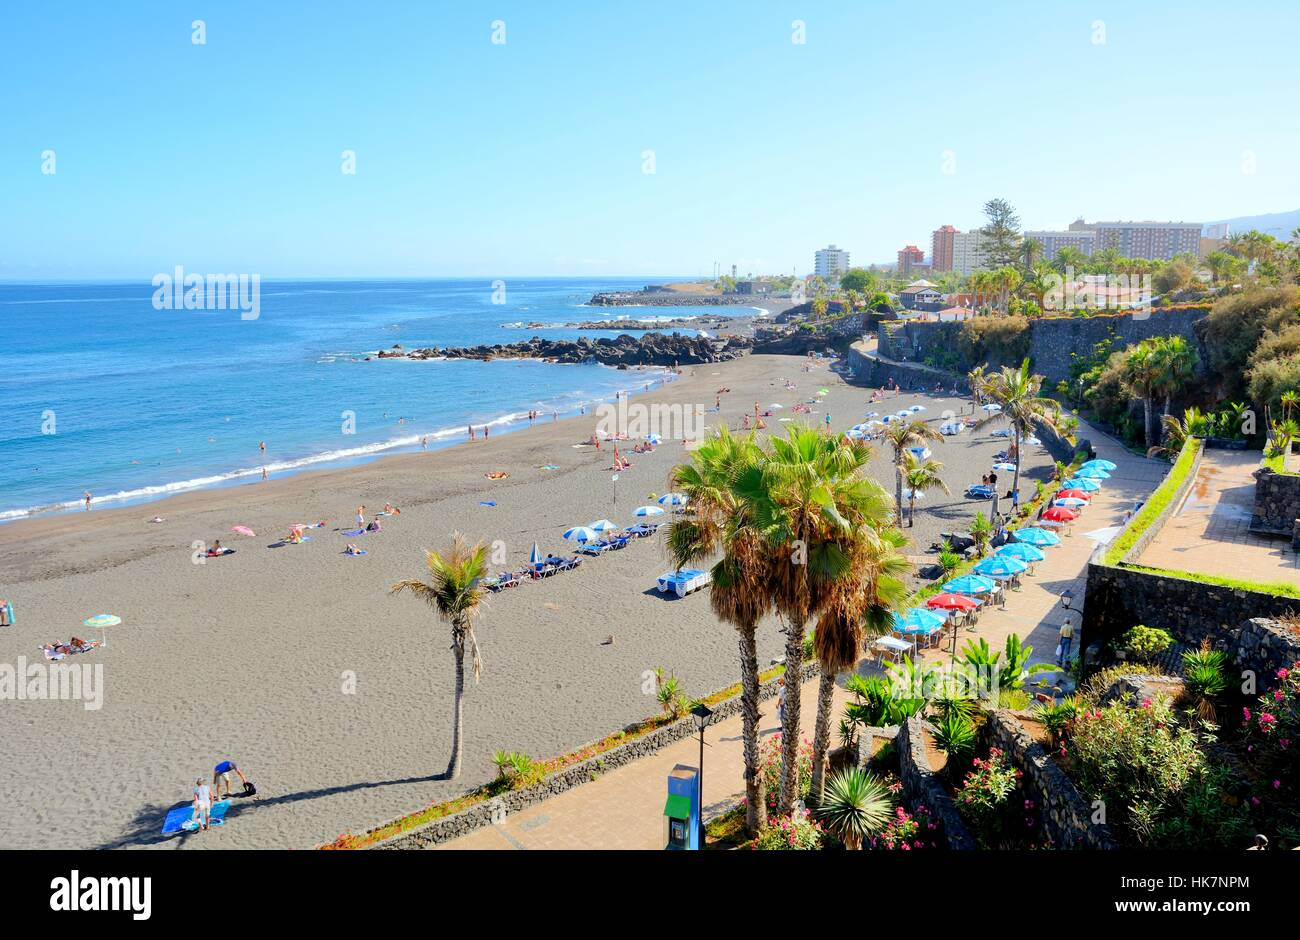 Playa jardin beach at puerto de la cruz on tenerife stock photo 132321804 alamy - Playa puerto de la cruz tenerife ...